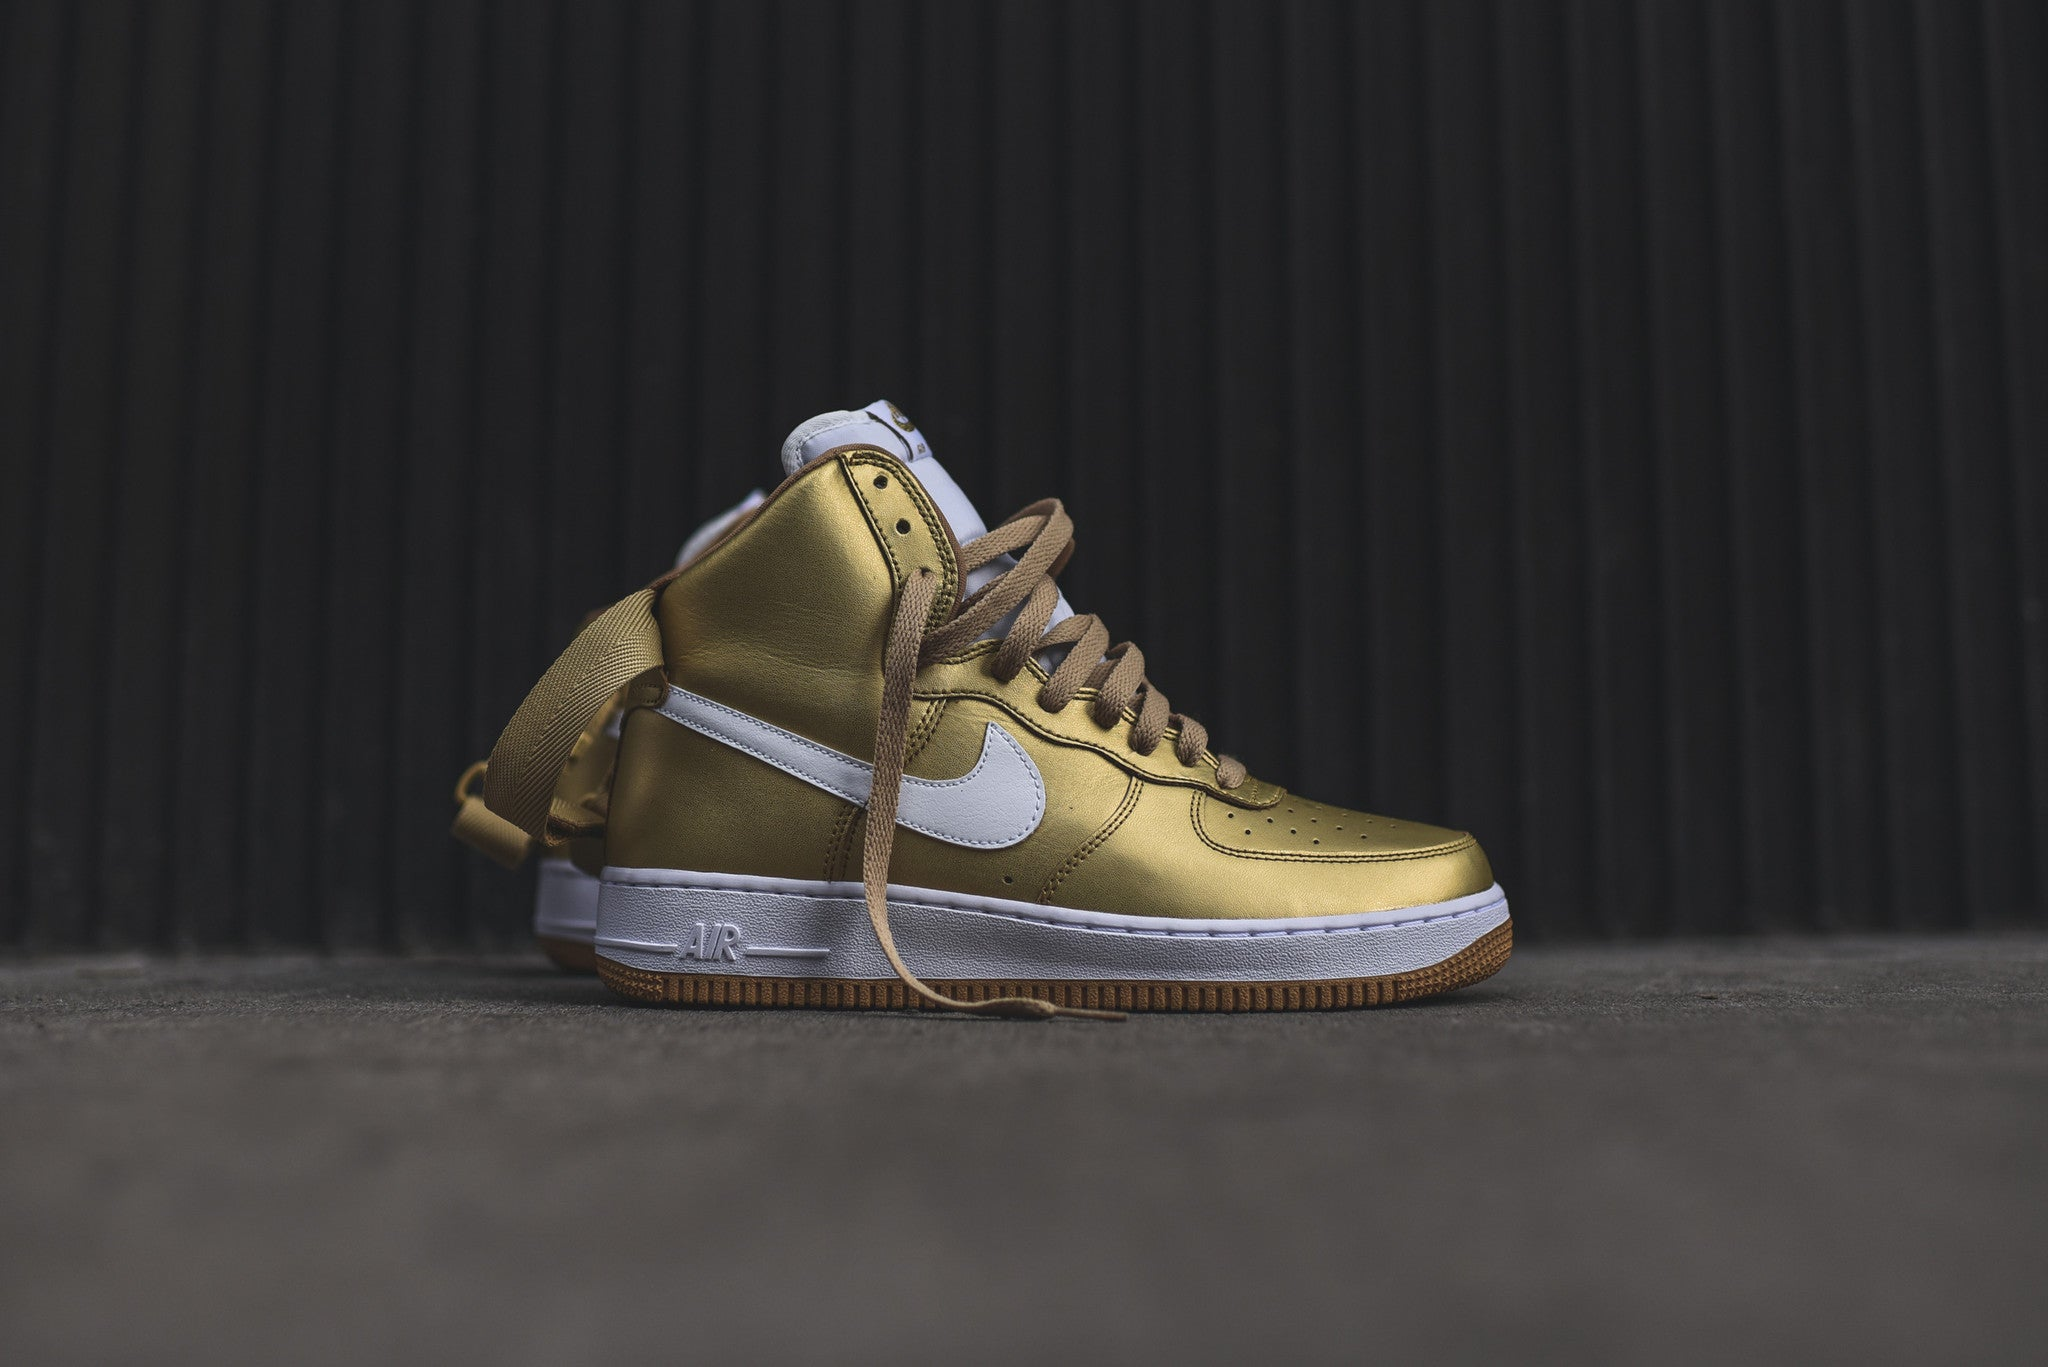 Https Blogs Art 2018 11 27t175612 0500 Weekly D Island Shoes Style Hikers Dm Mens Leather Cokelat Nike Af1 High Qs Gold 1v1455688711